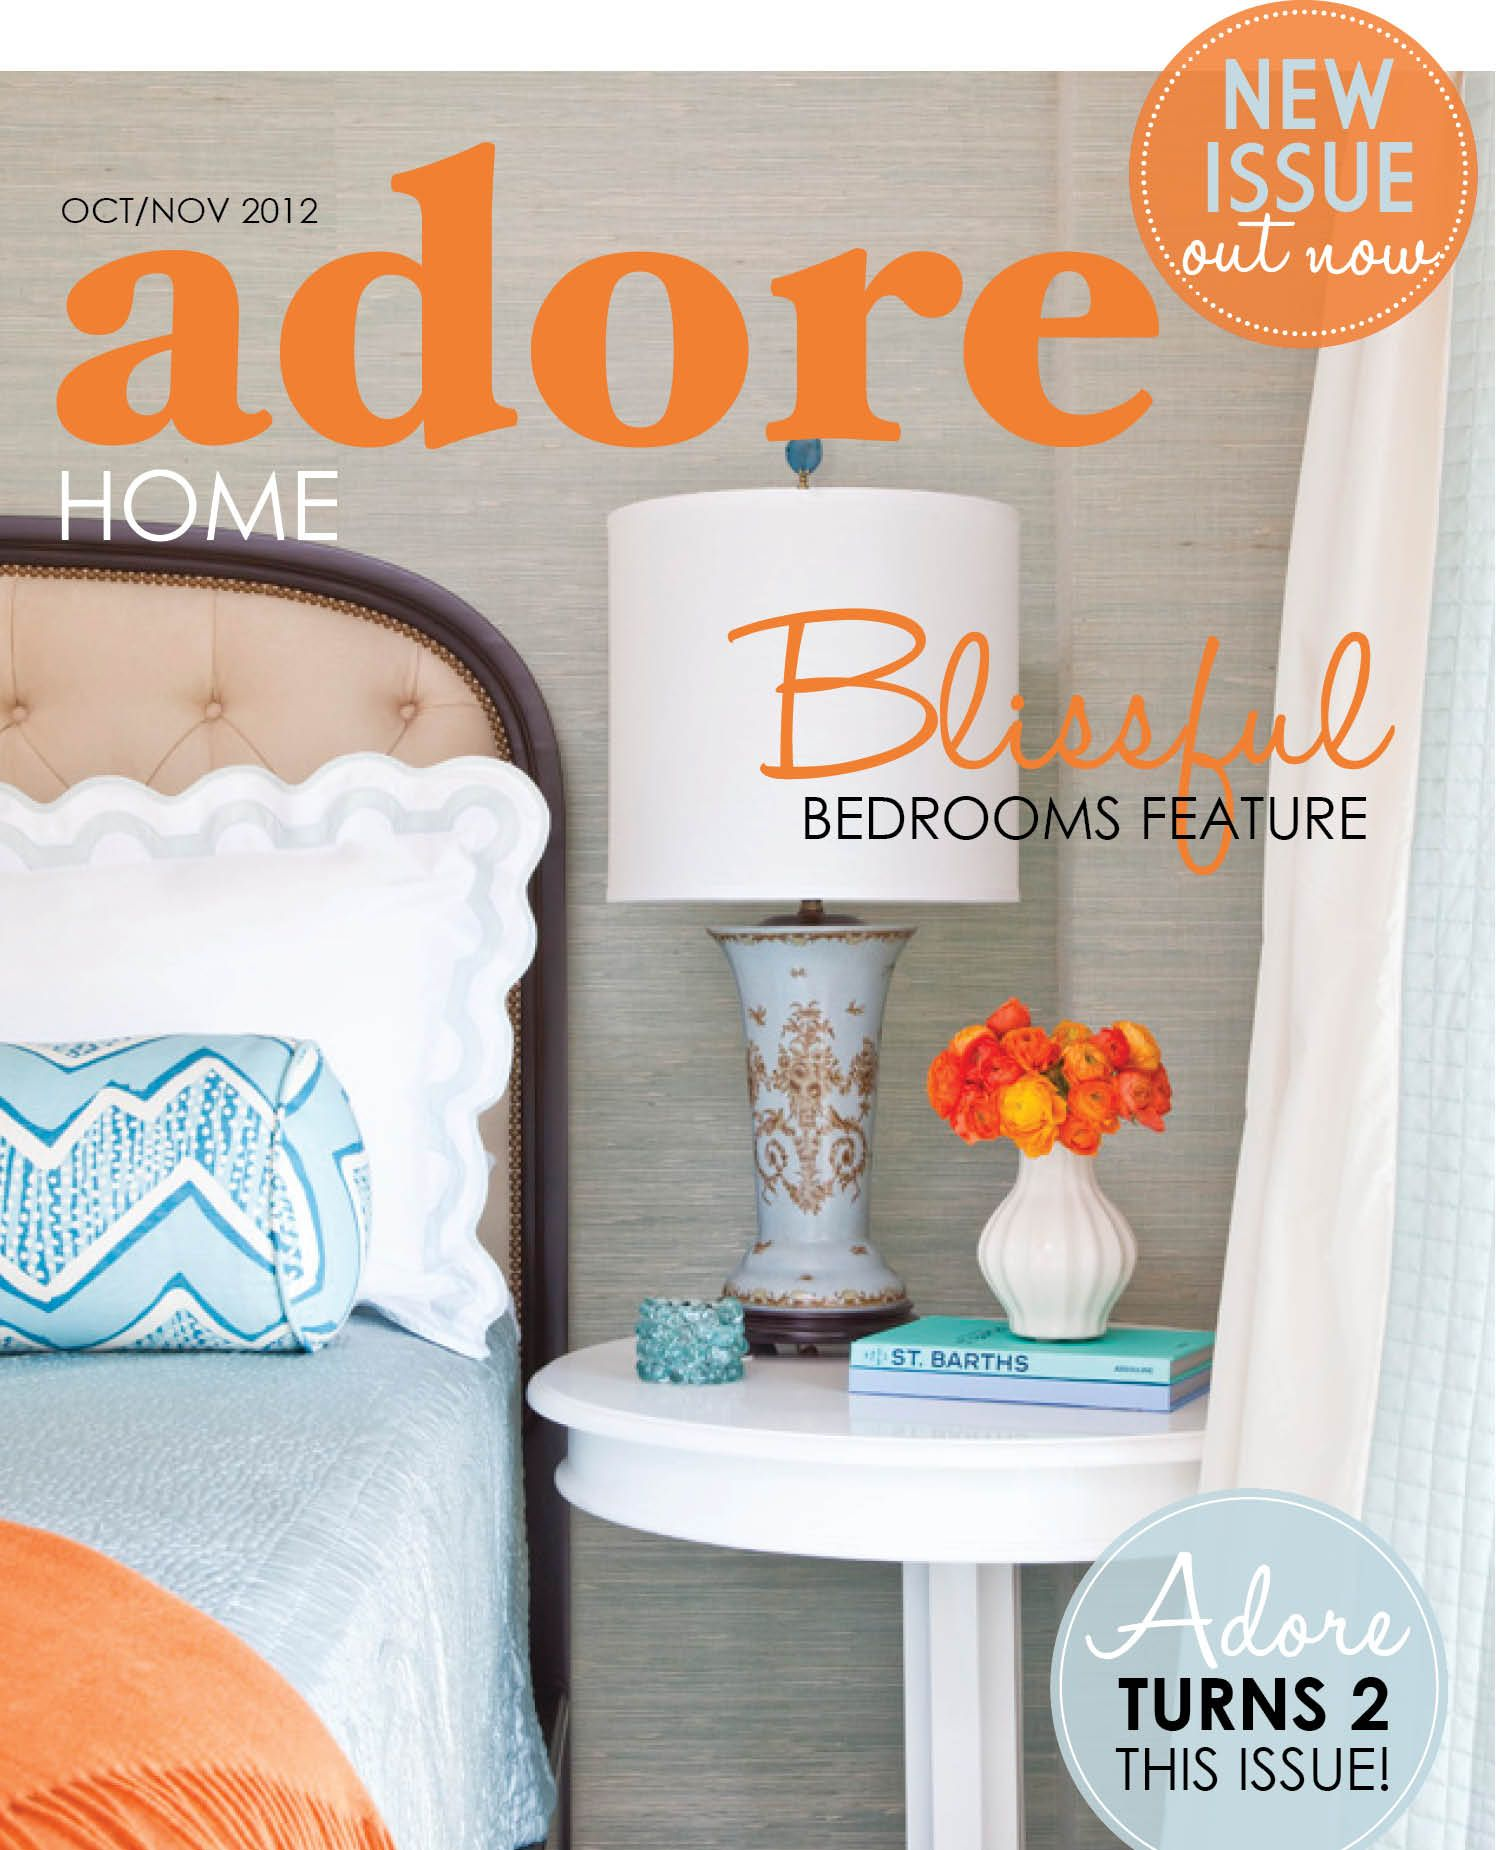 Adore Home magazine oct-nov/2012 #lifestyle #decor #interior #design #free